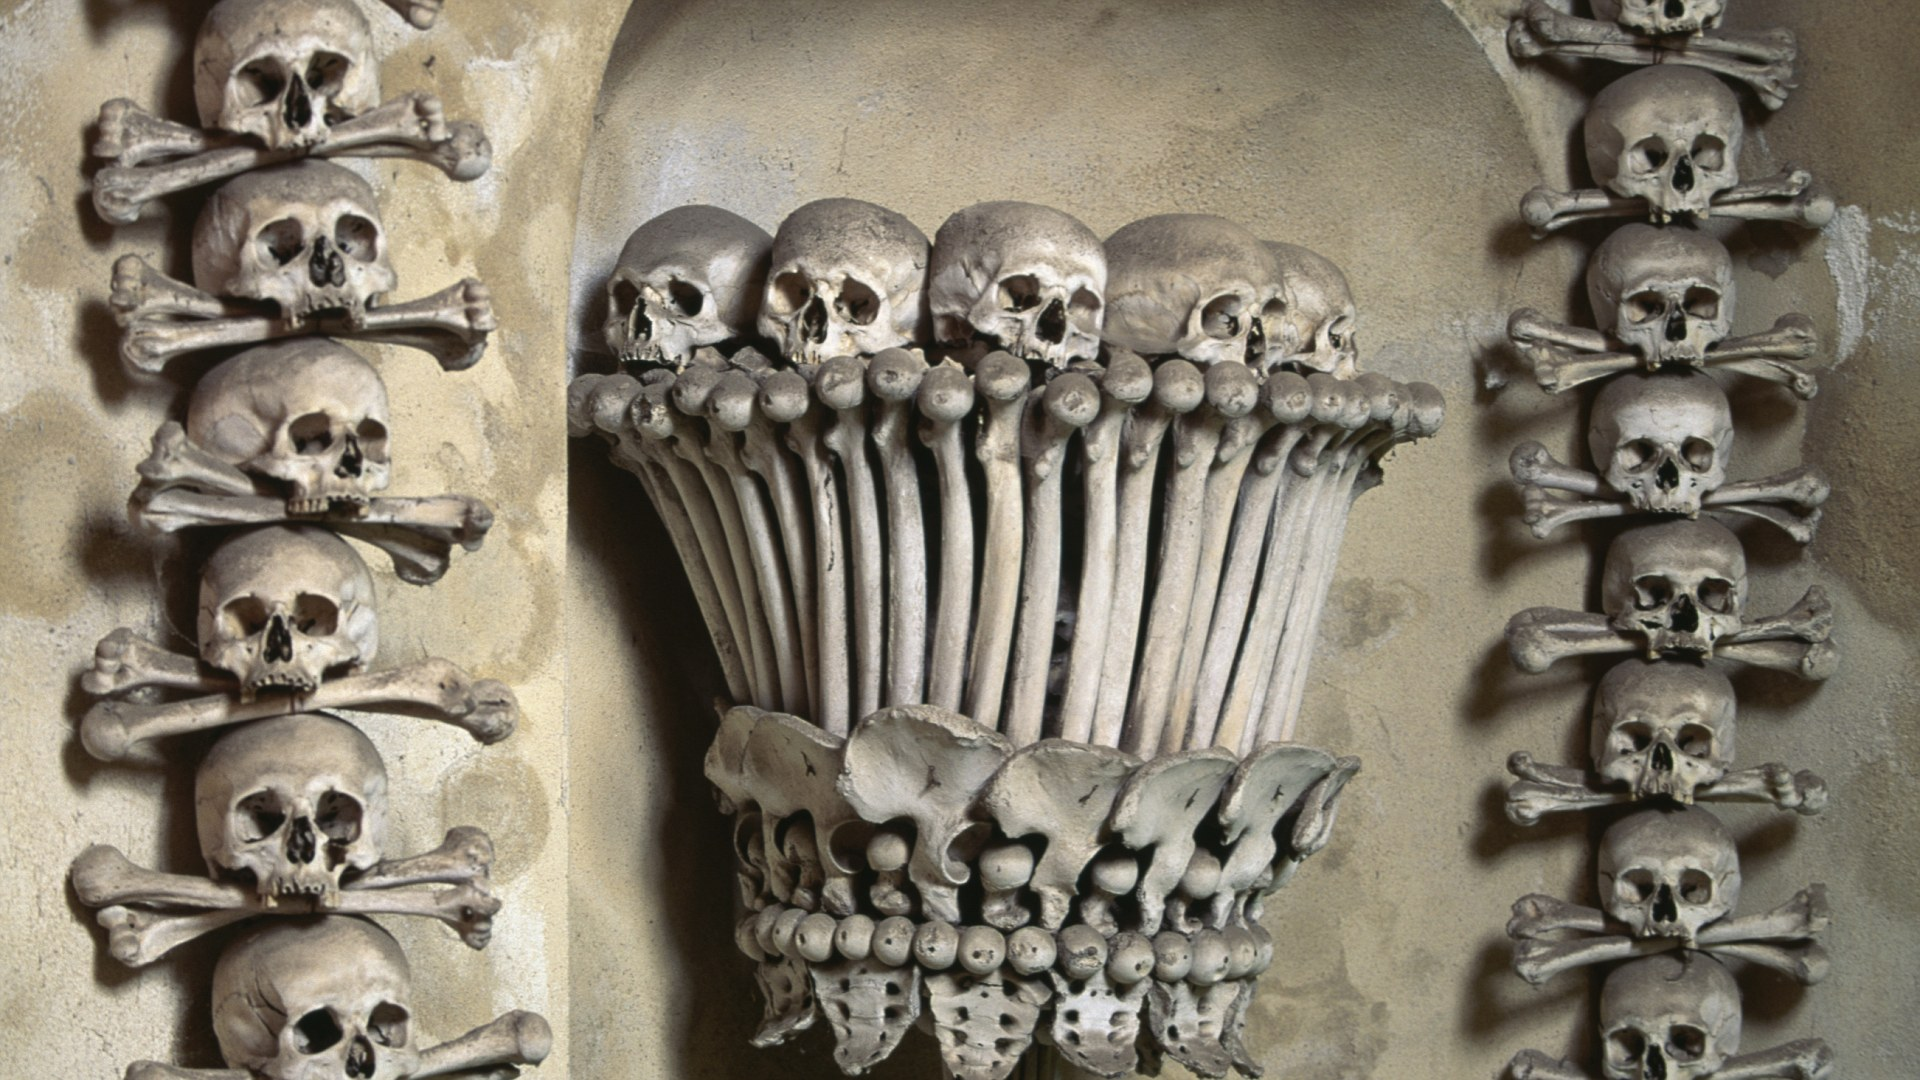 Decoration with human bones, Sedlec Ossuary, 1870, cemetary of All Saints Church, Kutna Hora, Central Bohemia region, Czech Republic.